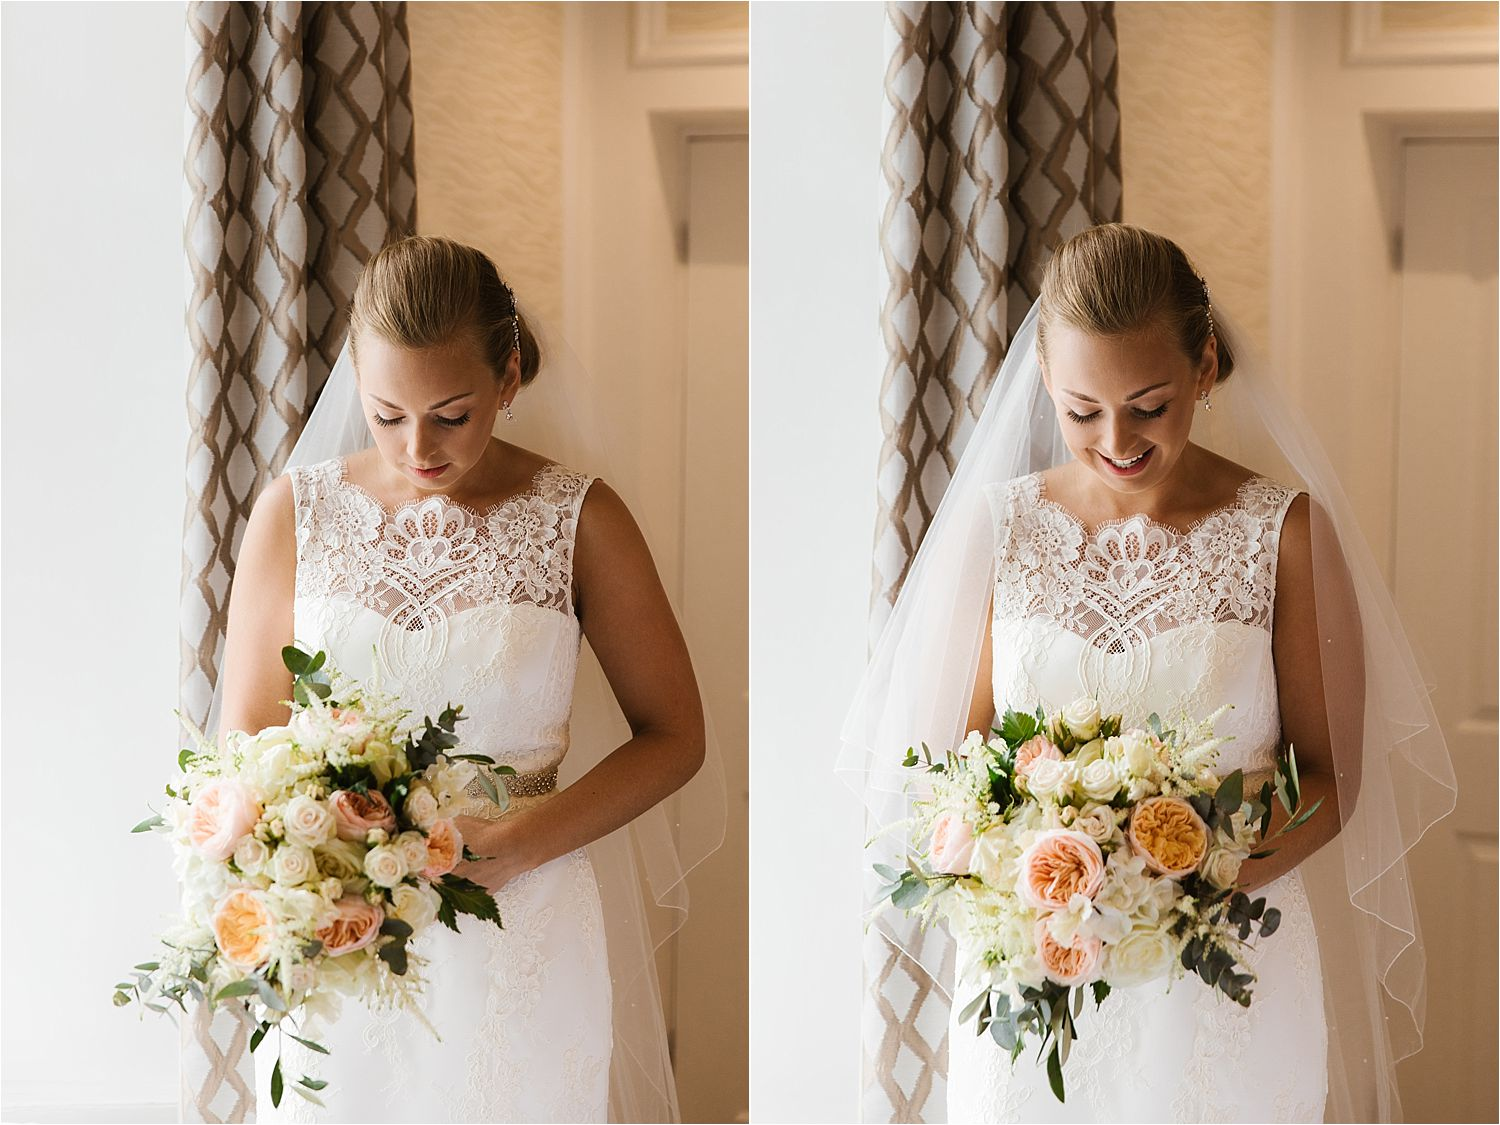 Bride with her wedding flowers - Dress by Augusta Jones at Mears Ghyll and bouquet by Brackens of Windermere